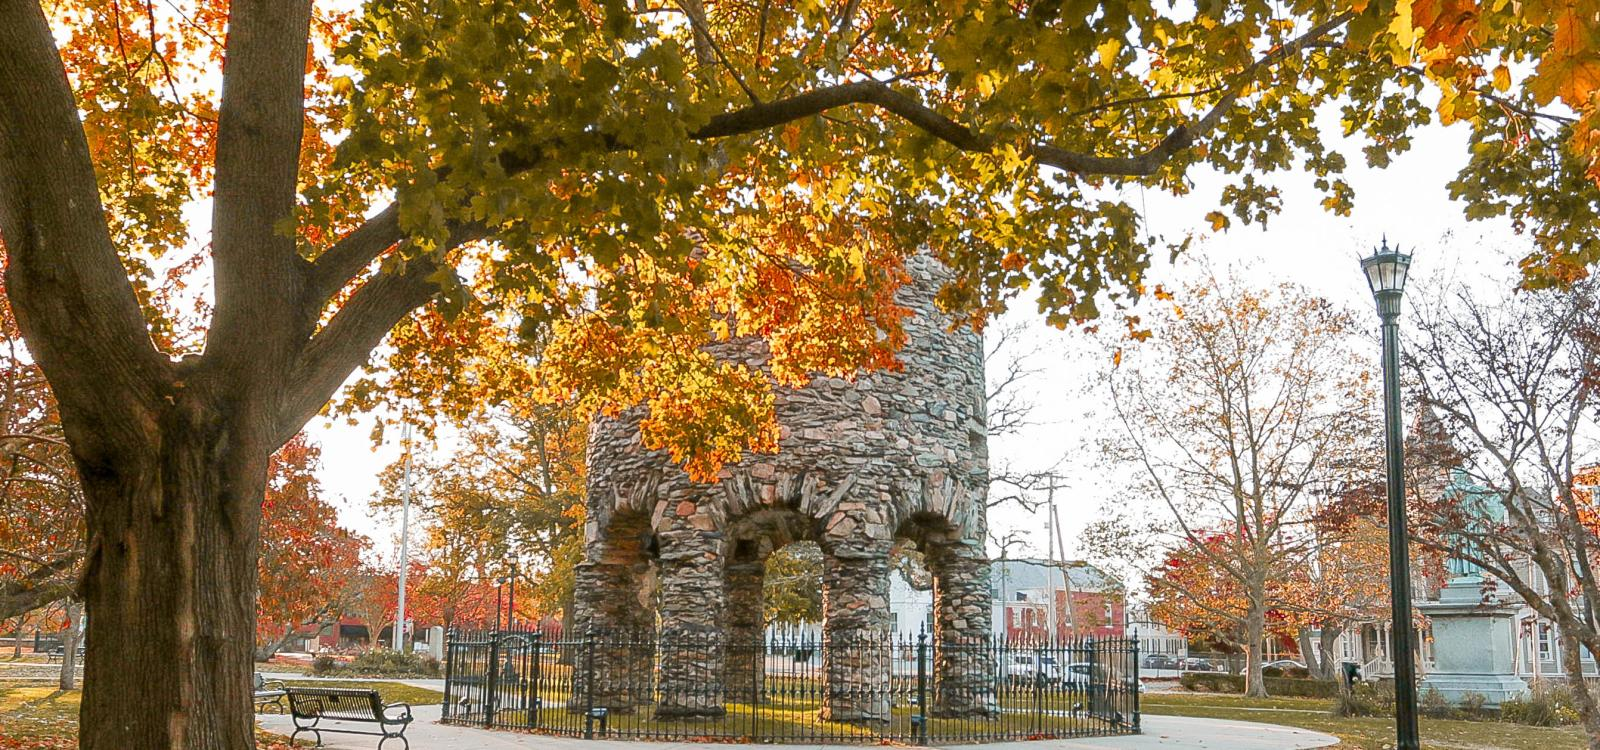 Things To Do In Newport RI In November   Discover Newport, Rhode Island